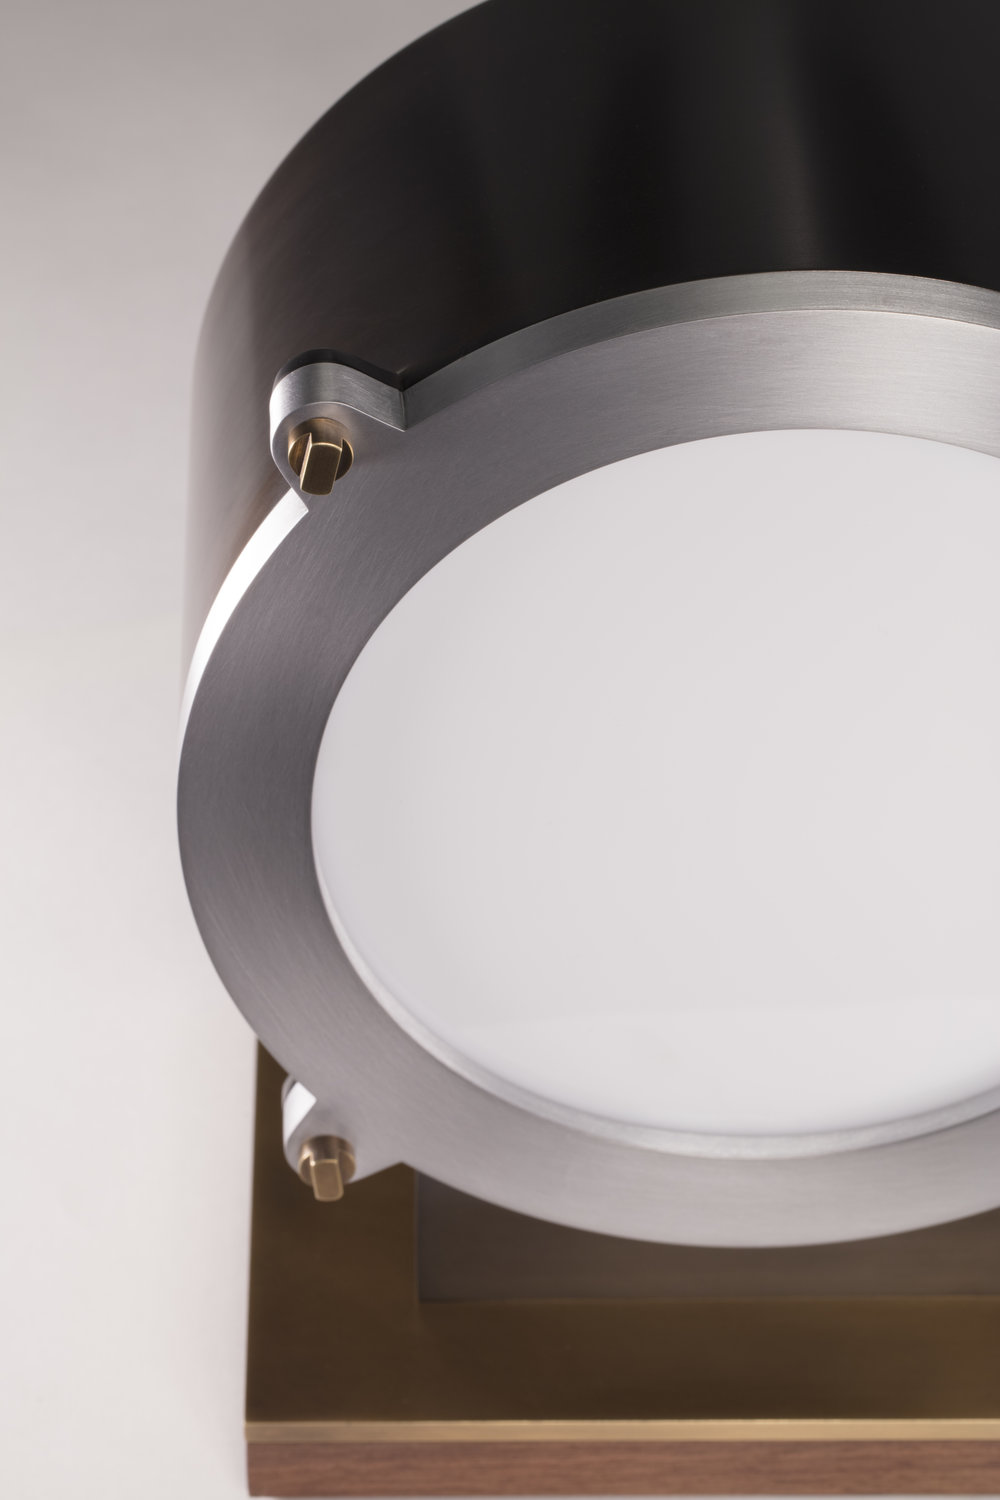 Tank Light by APD Argosy Product Division